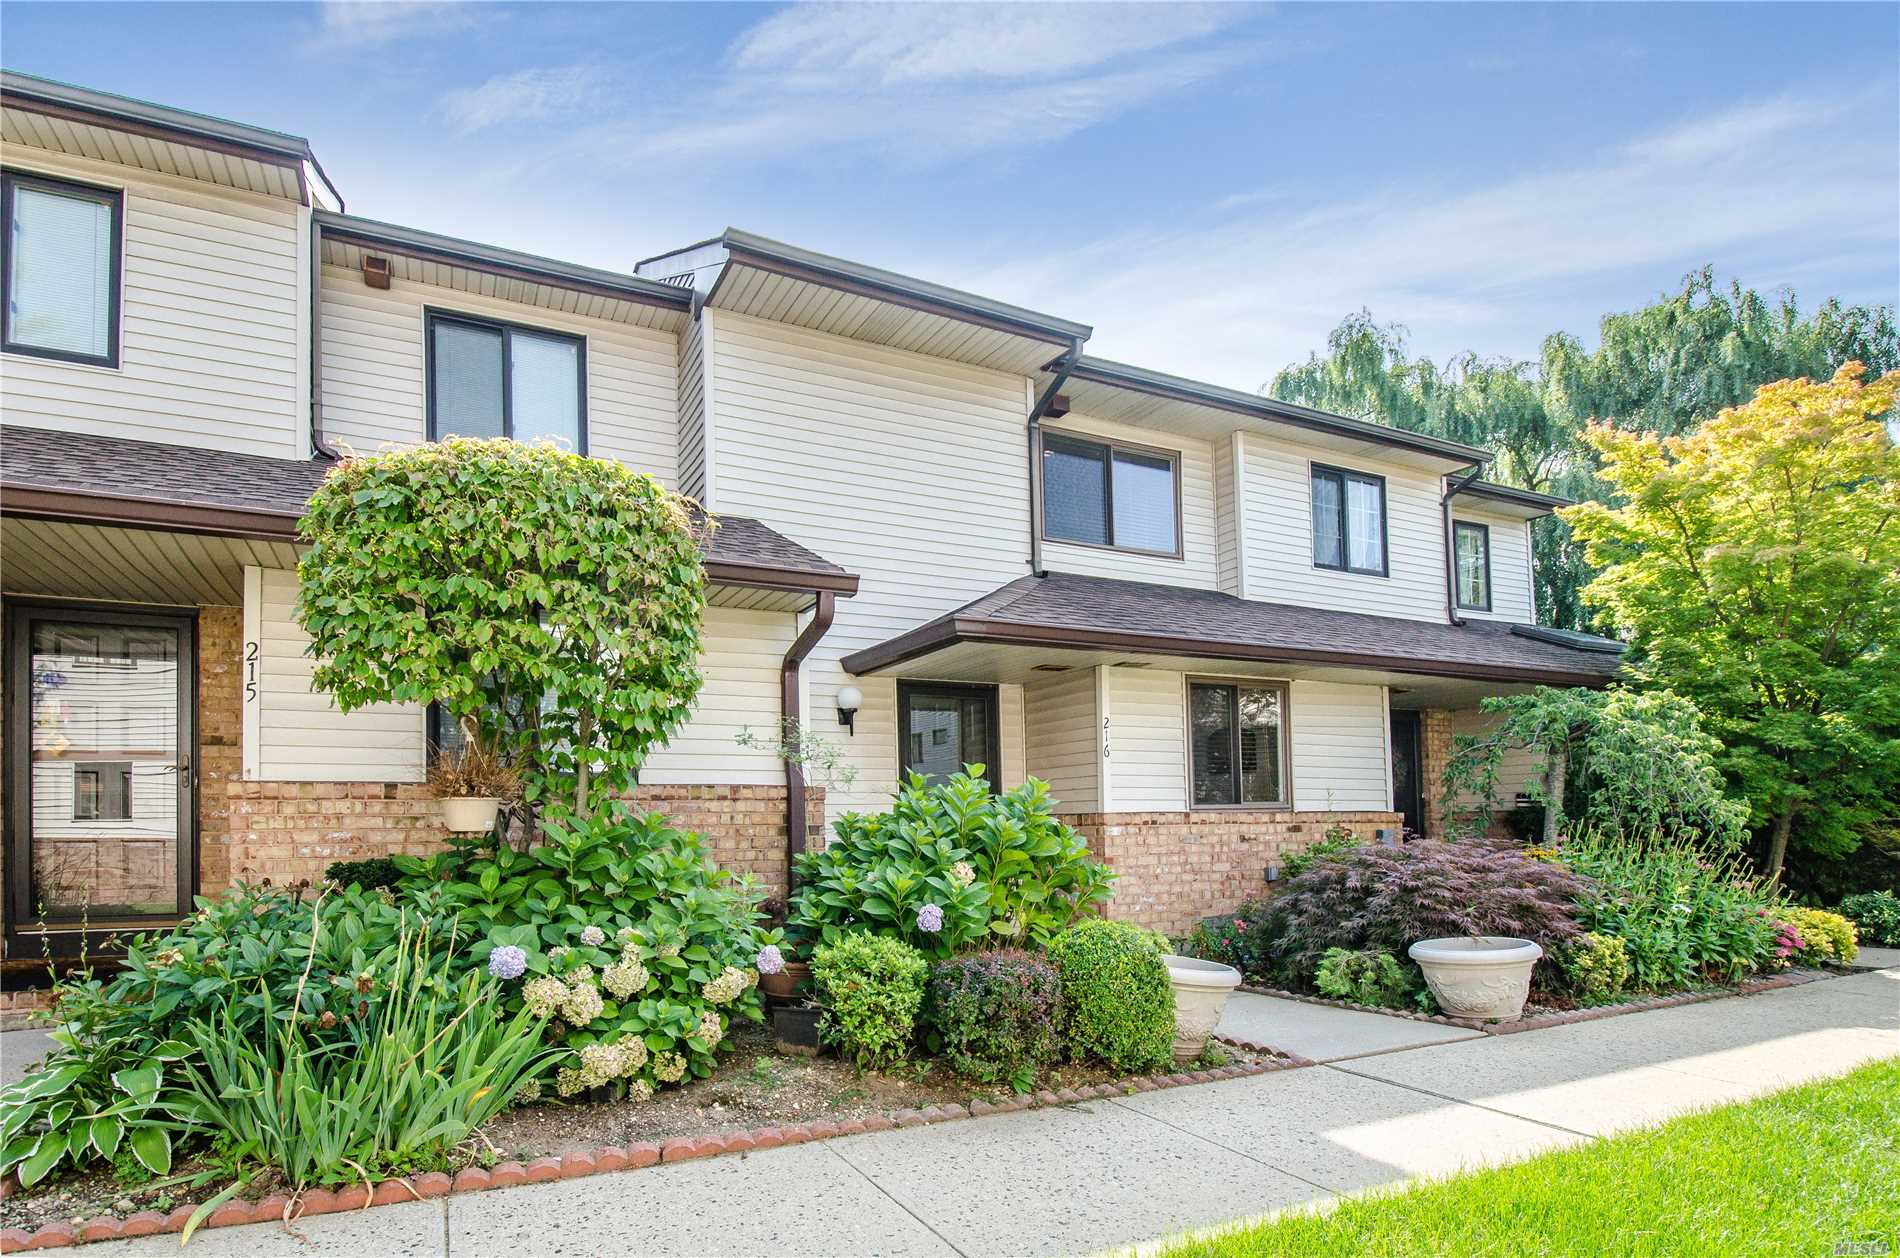 Property for sale at 216 Poplar Ct, Wantagh,  NY 11793